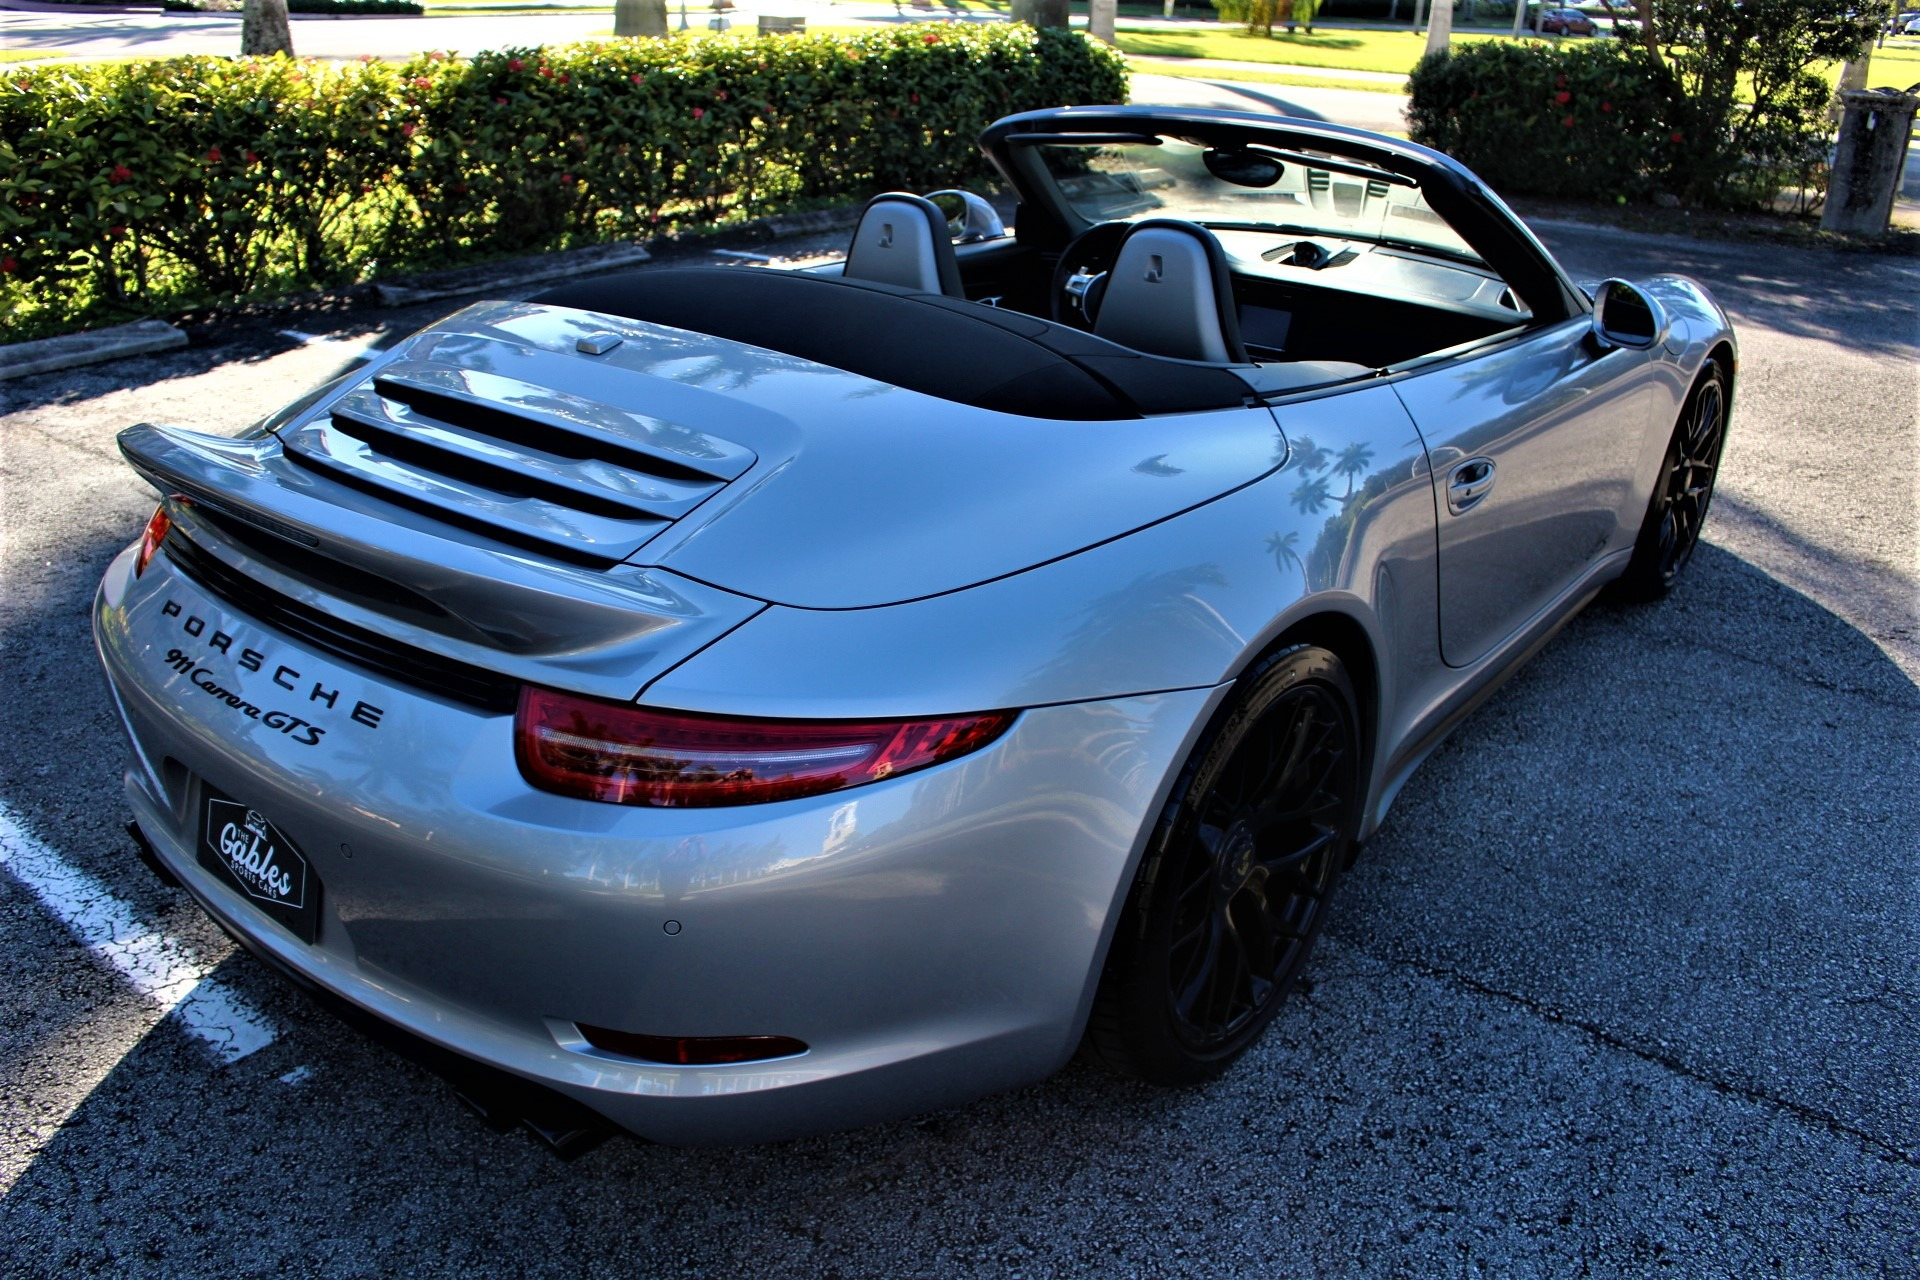 Used 2016 Porsche 911 Carrera GTS for sale Sold at The Gables Sports Cars in Miami FL 33146 4